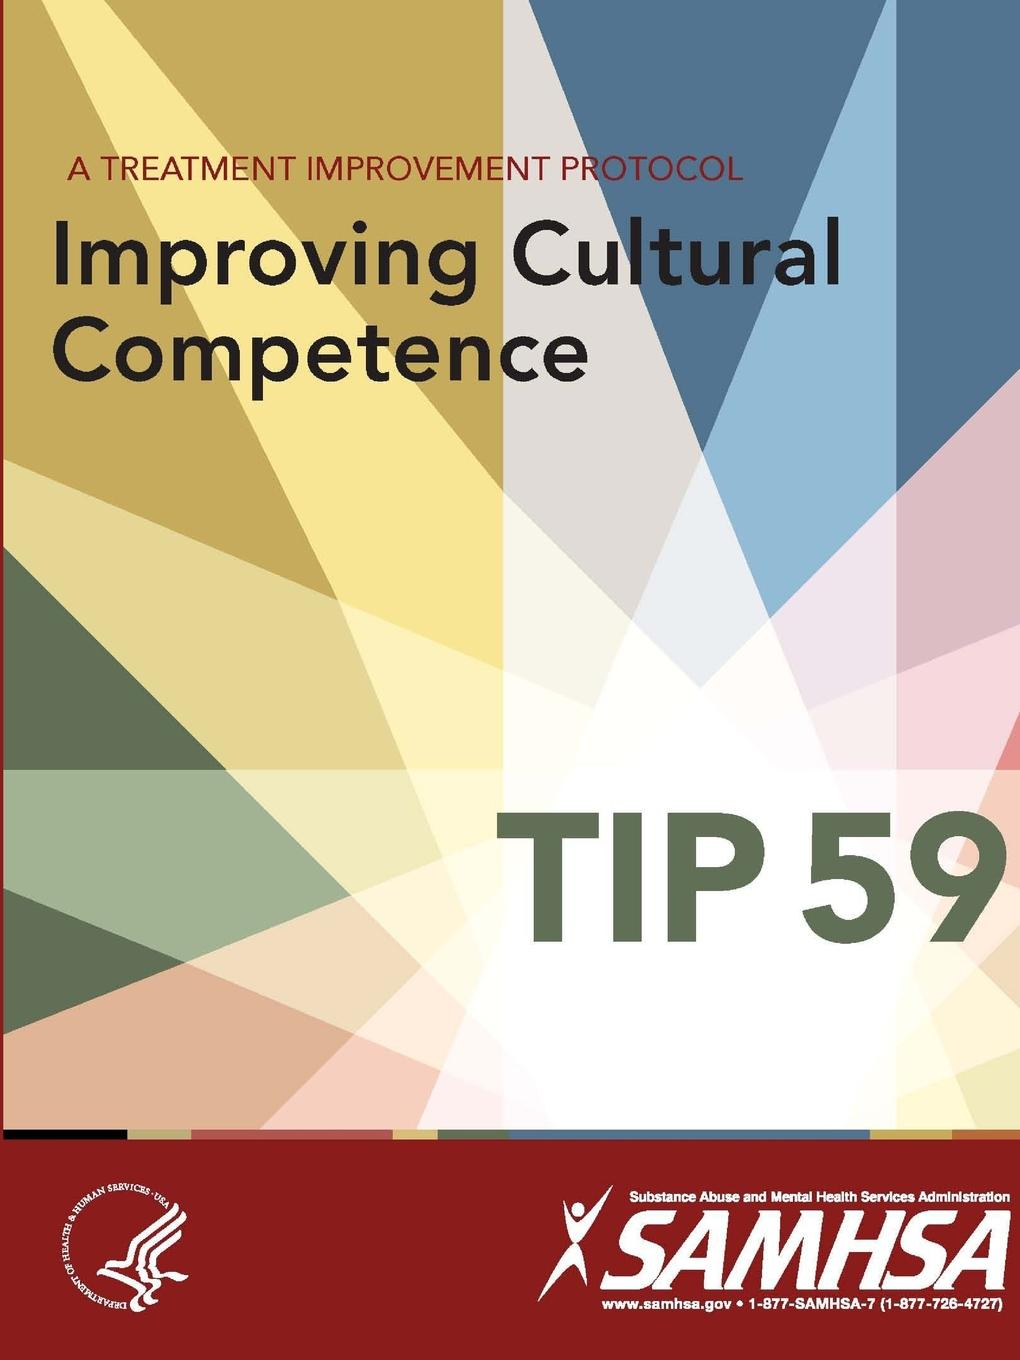 все цены на Department of Health and Human Services A Treatment Improvement Protocol - Improving Cultural Competence - TIP 59 онлайн